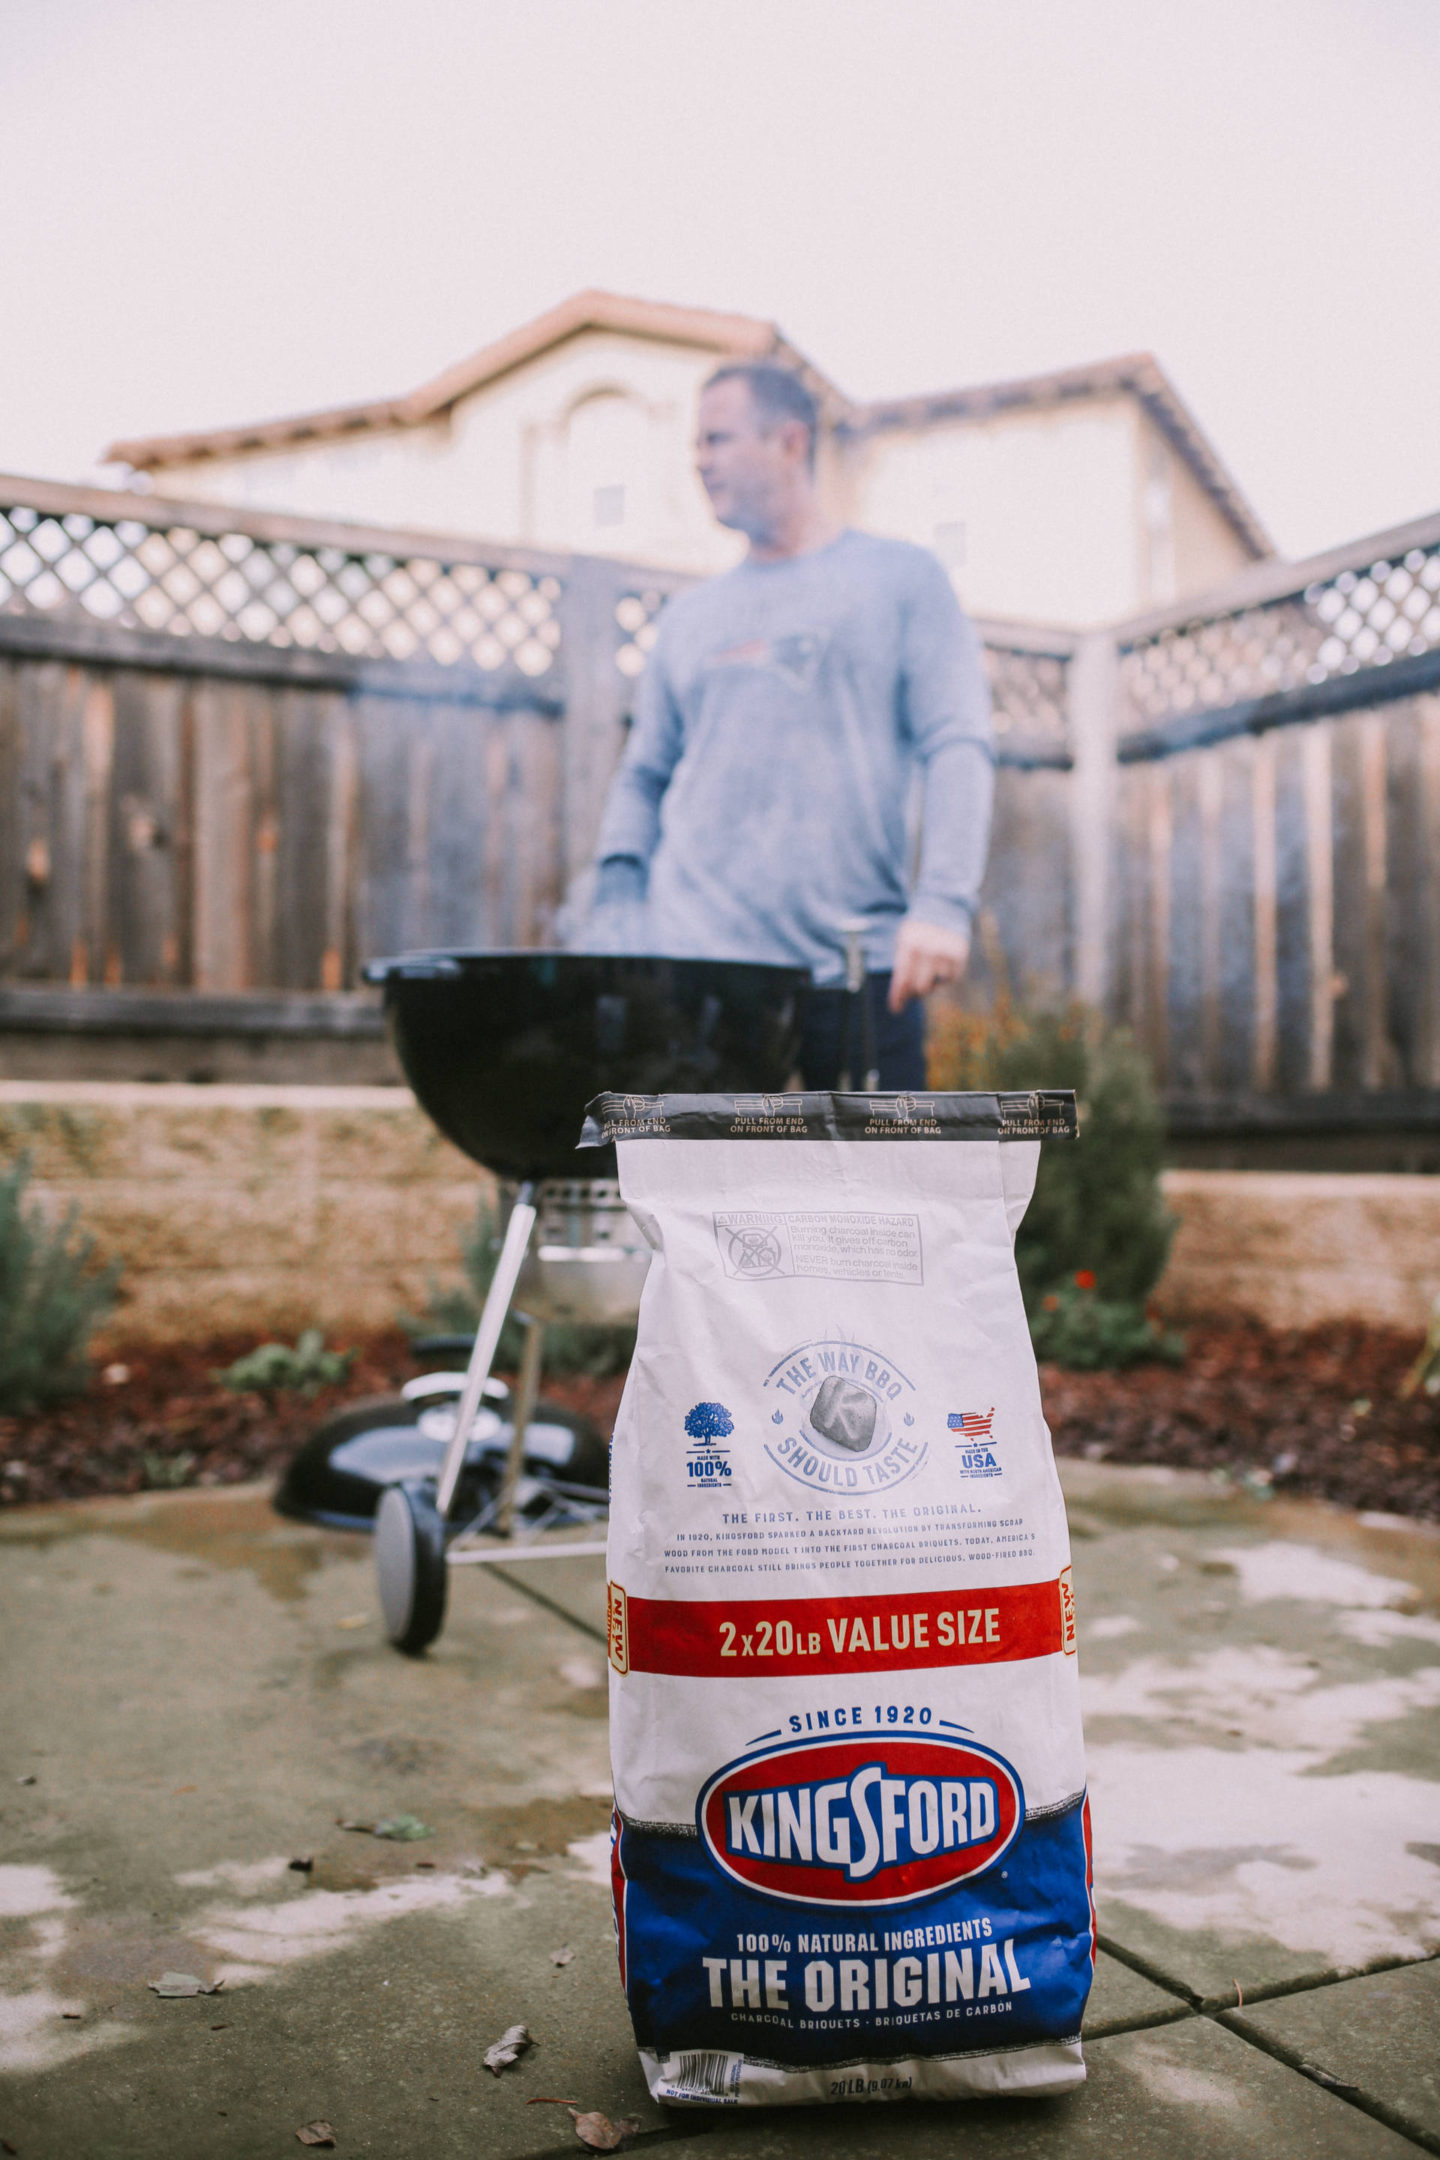 Ruthie Ridley Blog: Super Bowl Home-Gating With Kingsford